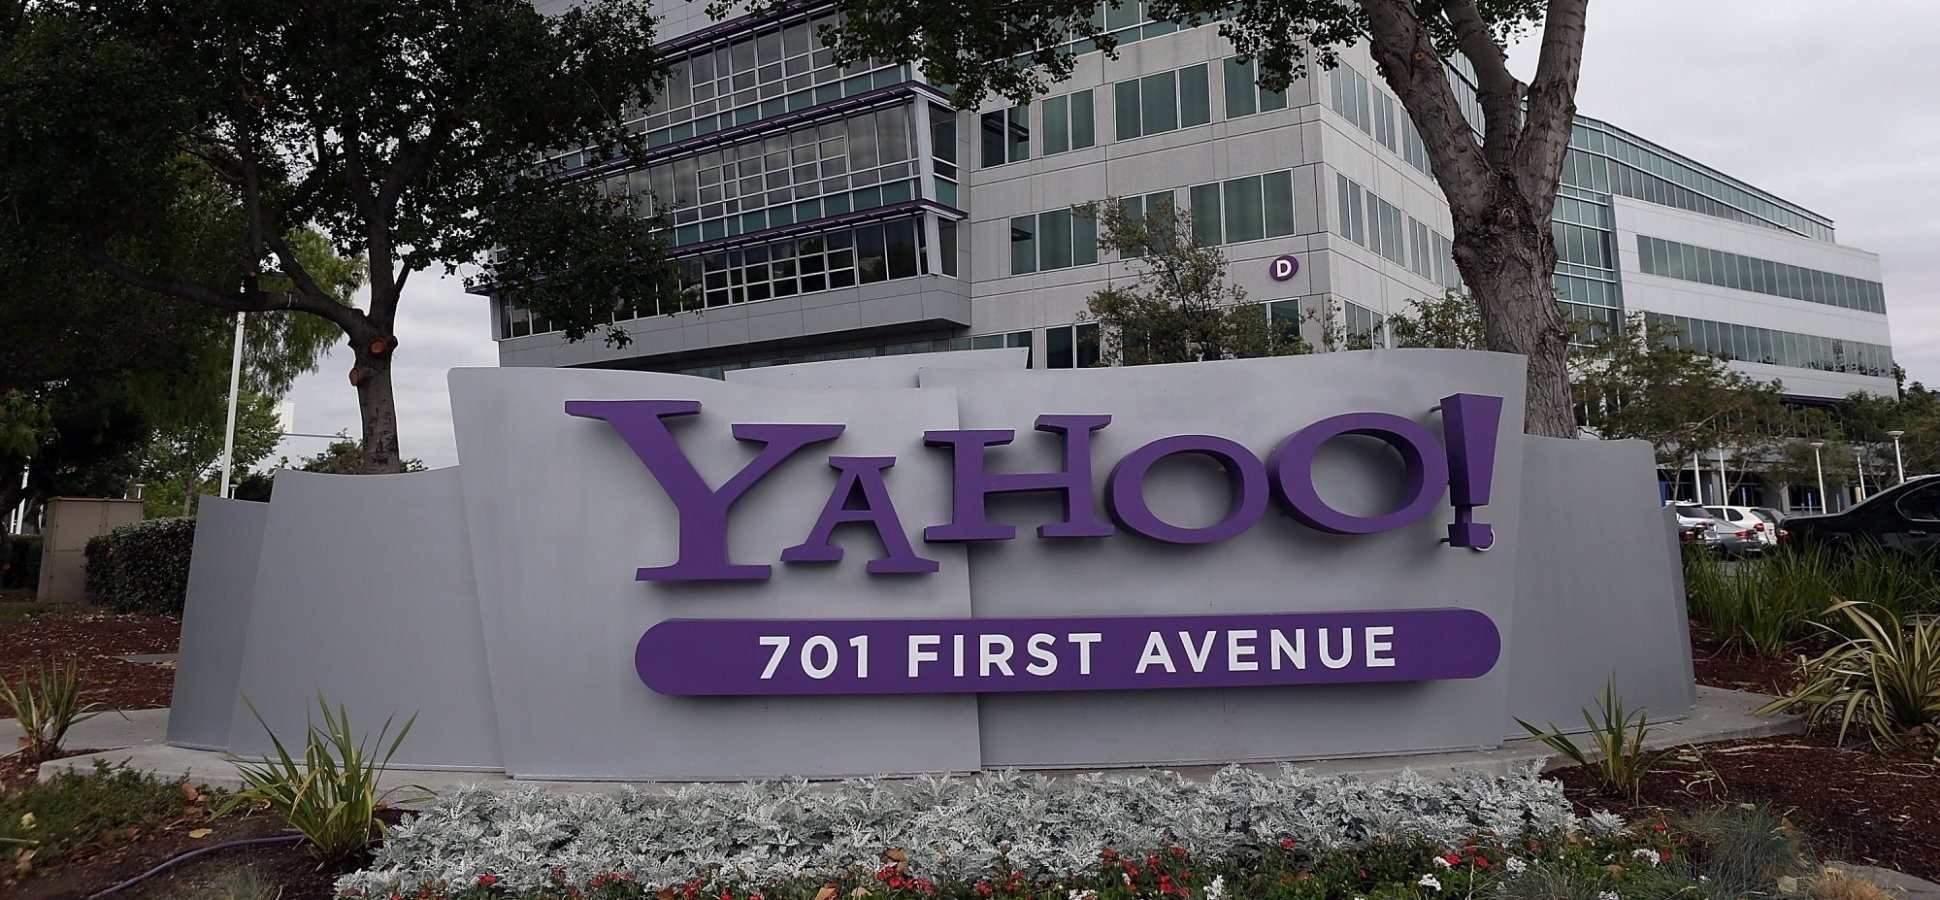 The Yahoo Breach Settlement Means You Could Be Eligible for $358. Here's How to Claim Your Share